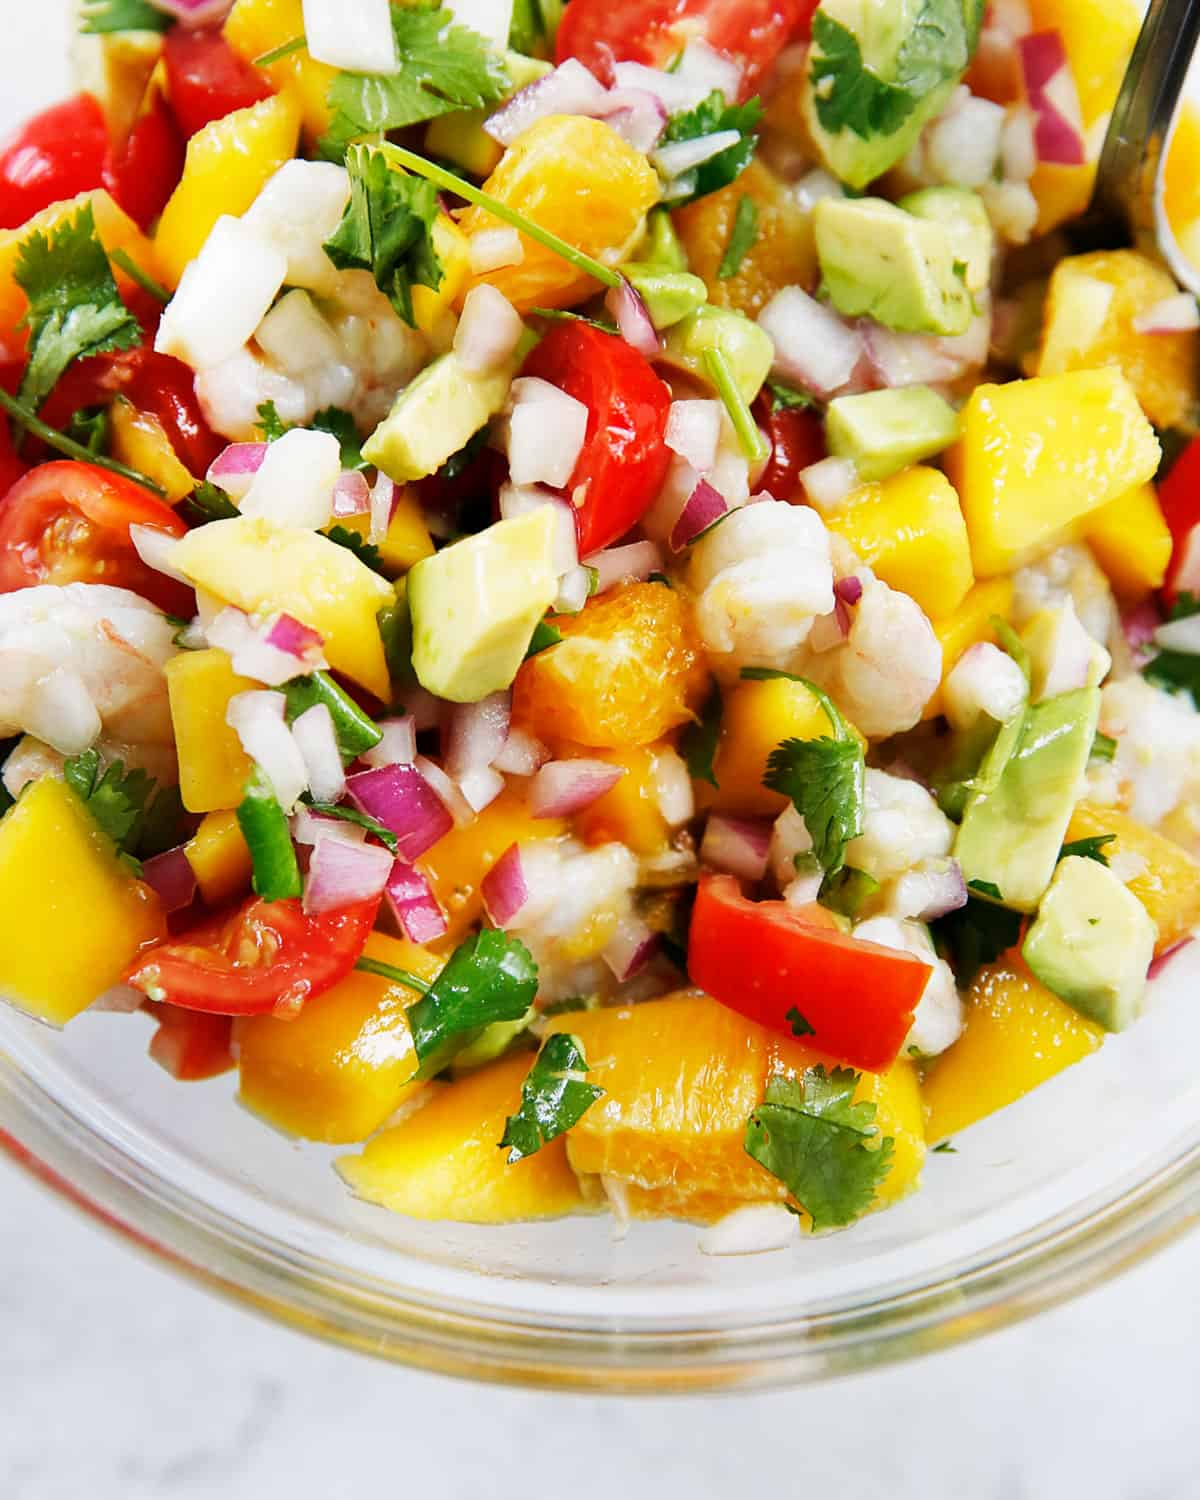 Tropical Shrimp ceviche in a bowl.